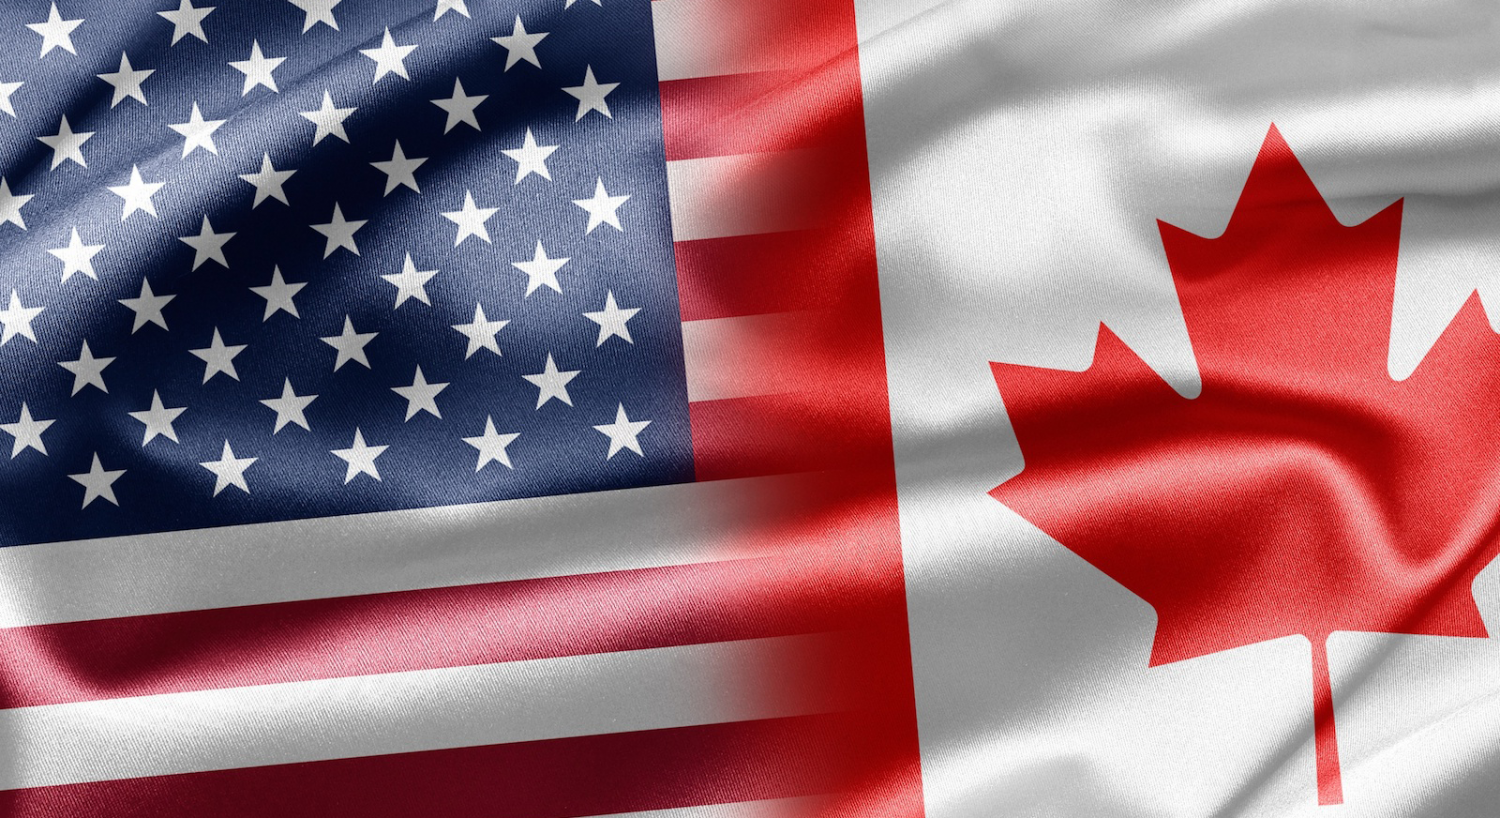 Op/Ed - How to Move to Canada